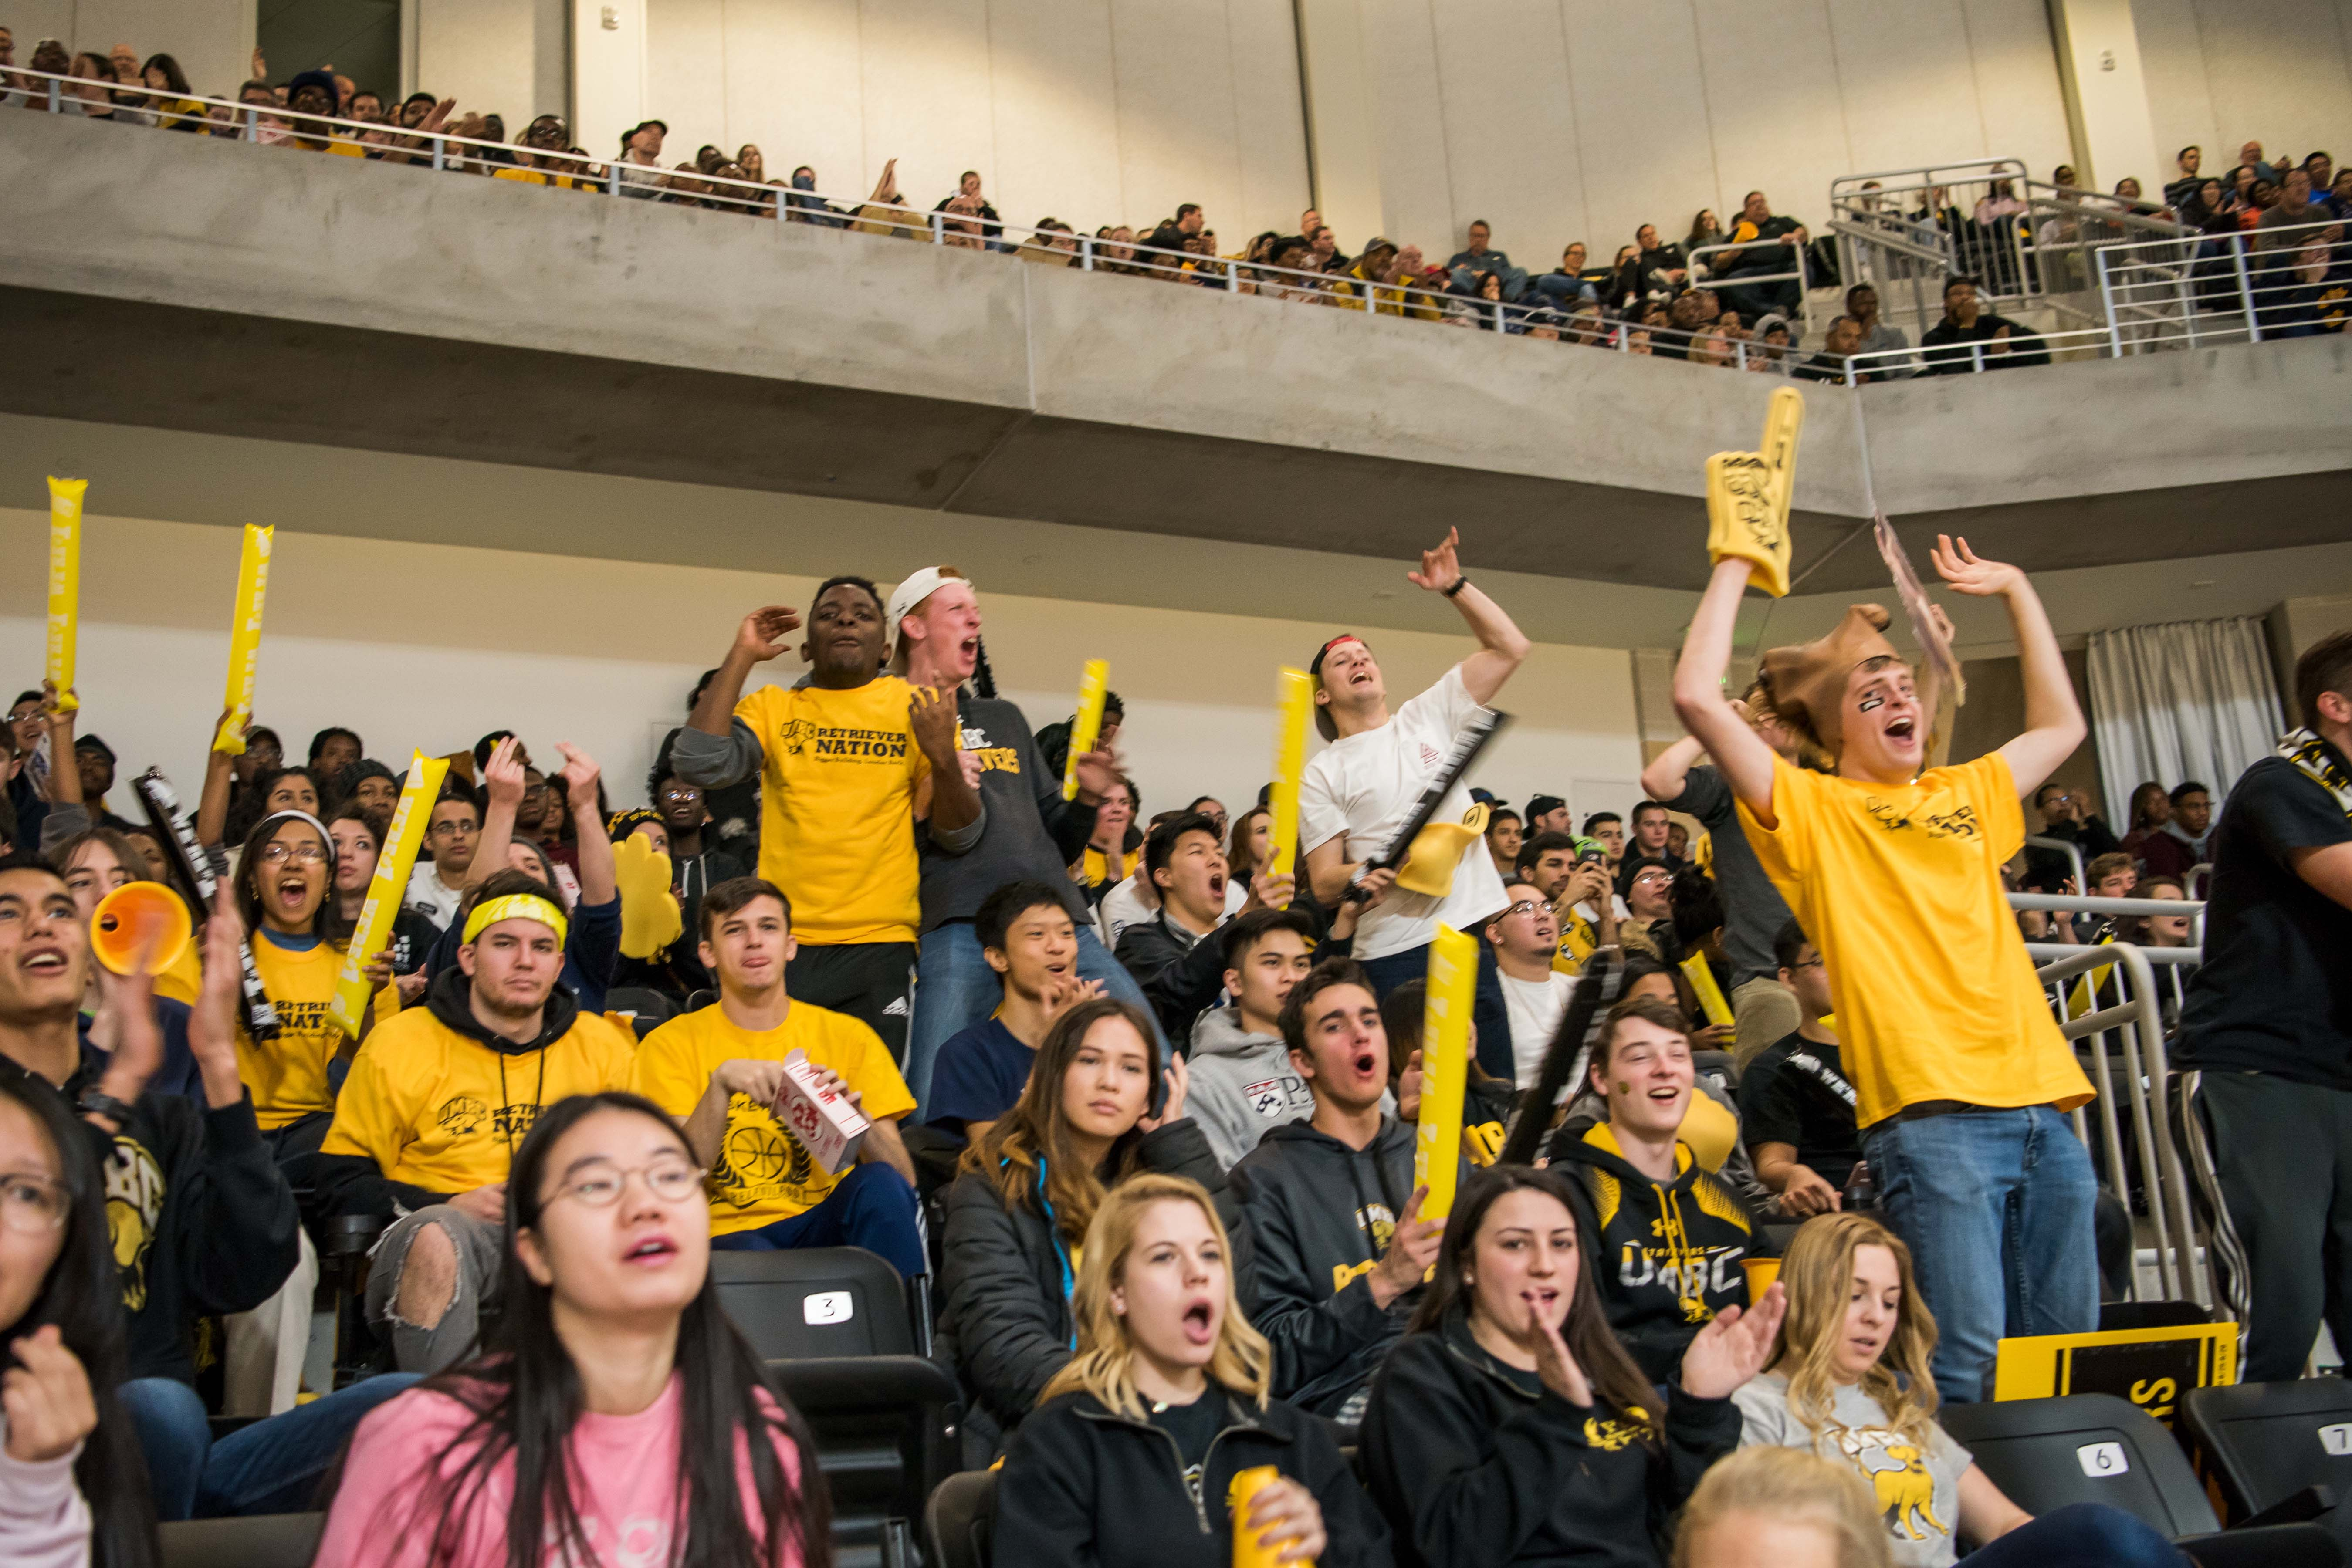 People get up and cheer crowd filled with UMBC gear at basketball game